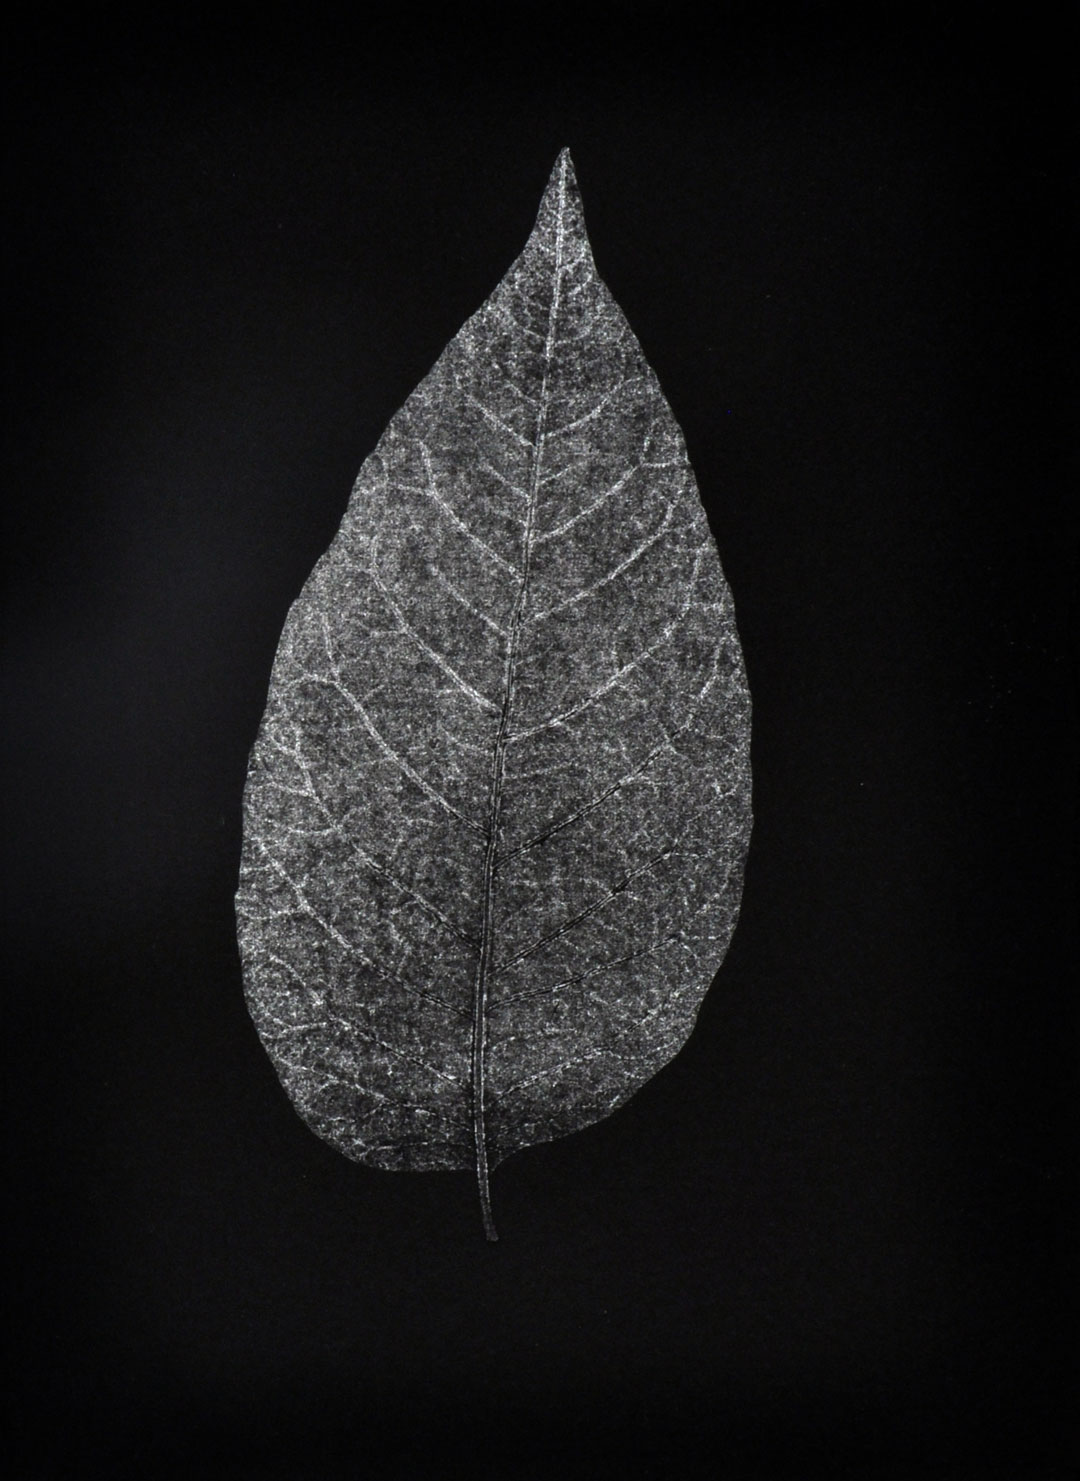 """Monotype, 2014, Christine Mauersberger dried and flattened Leaf, silver ink, black somerset paper. 5 1/2"""" x 7 1/2"""""""